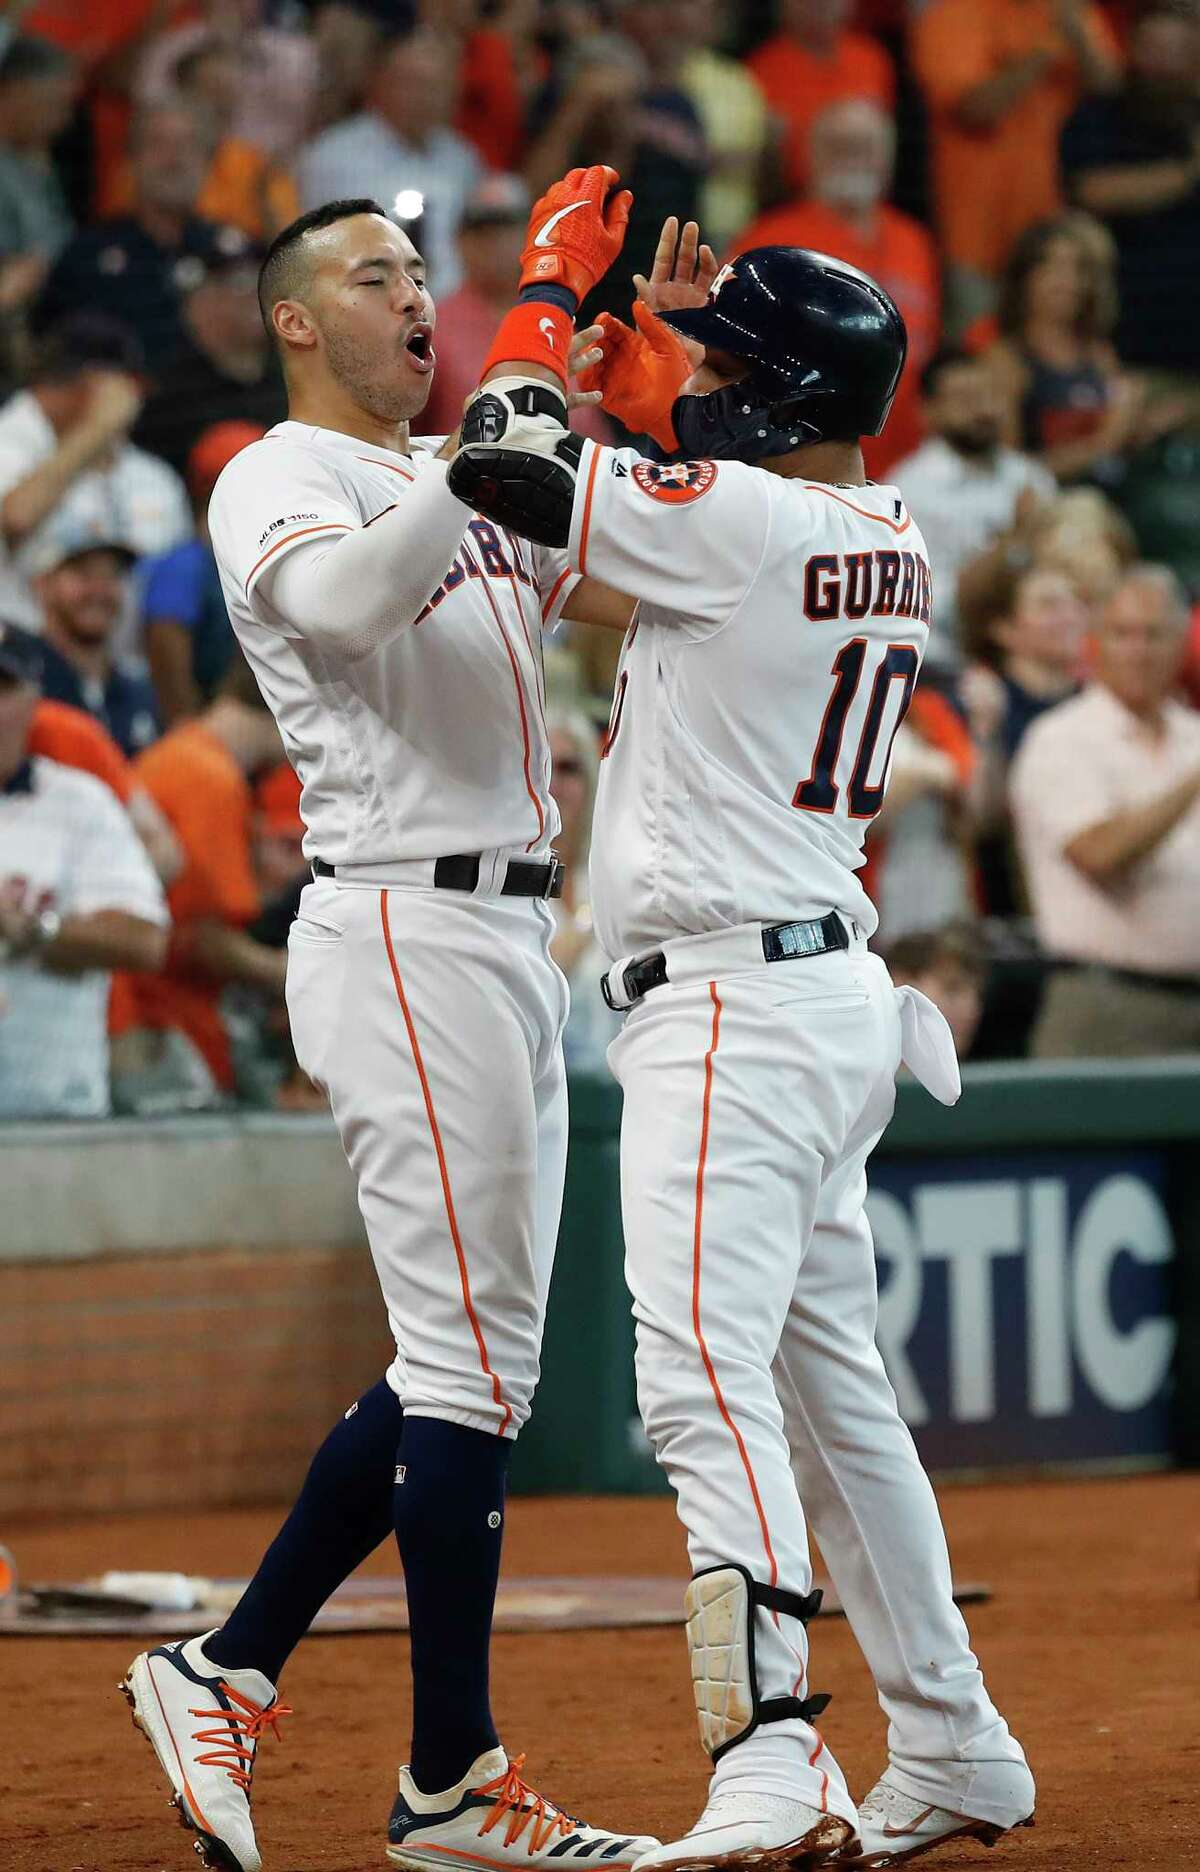 Houston Astros Yuli Gurriel (10) celebrates with Carlos Correa after hitting a three-run home run off of Colorado Rockies starting pitcher Peter Lambert during the first inning of an MLB baseball game at Minute Maid Park, Wednesday, August 7, 2019.